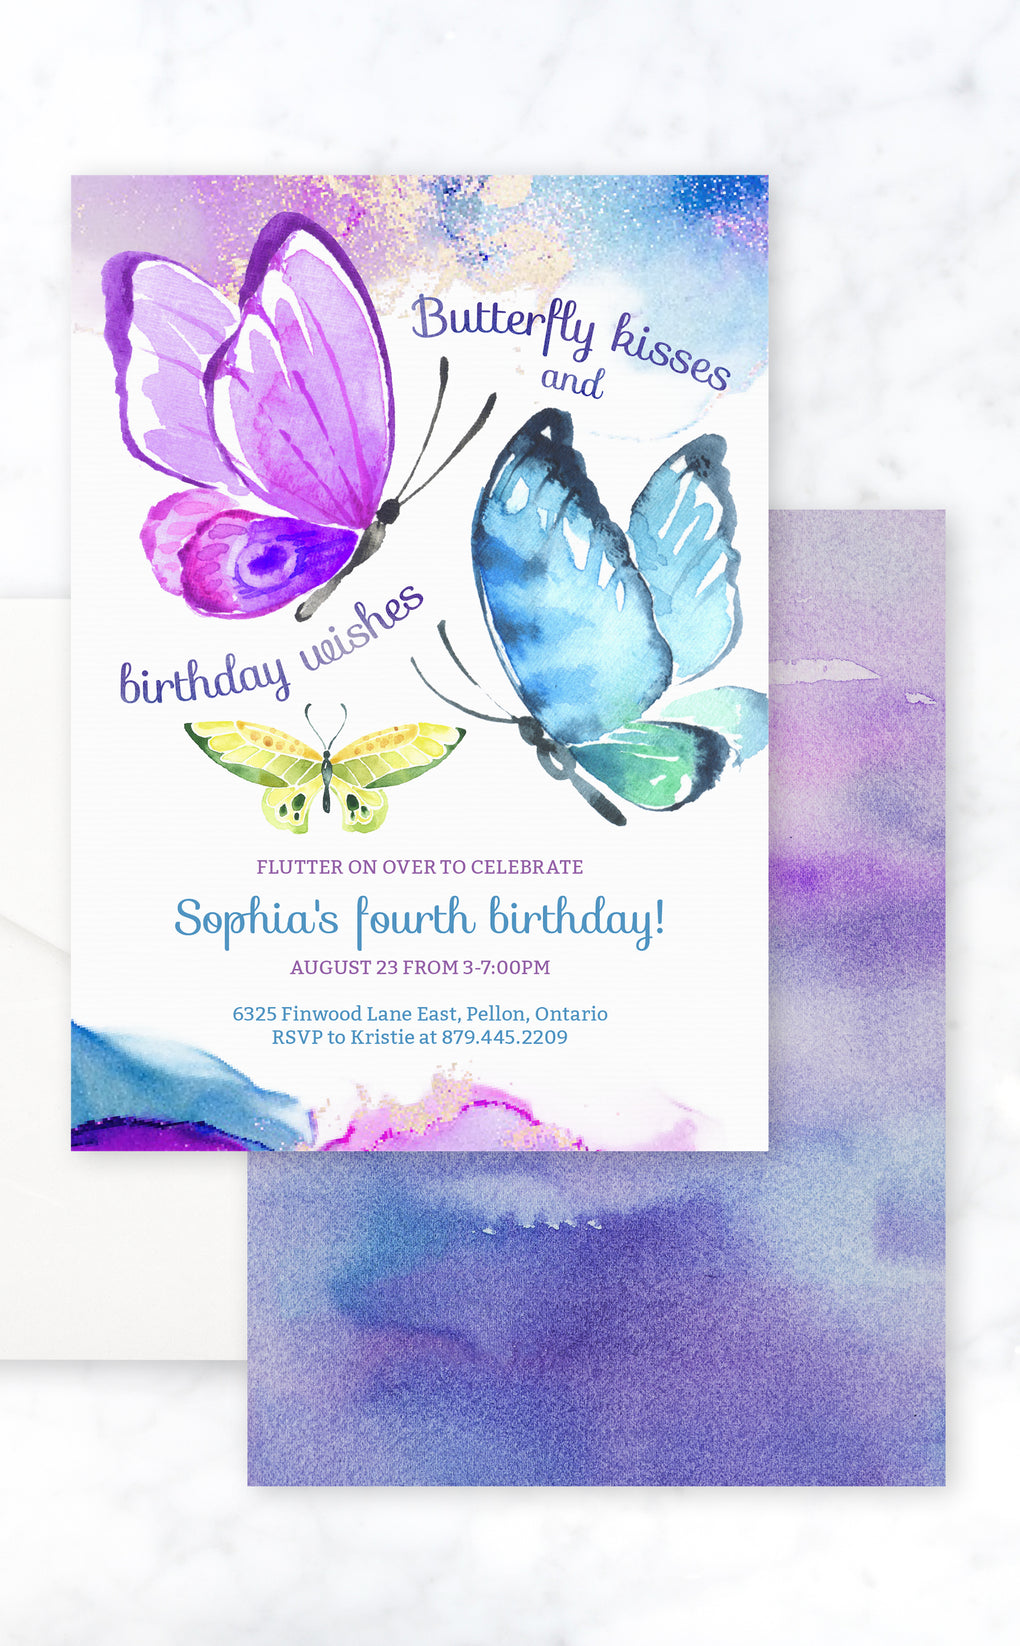 Kids birthday party invitation wit purple, blue and yellow butterflies